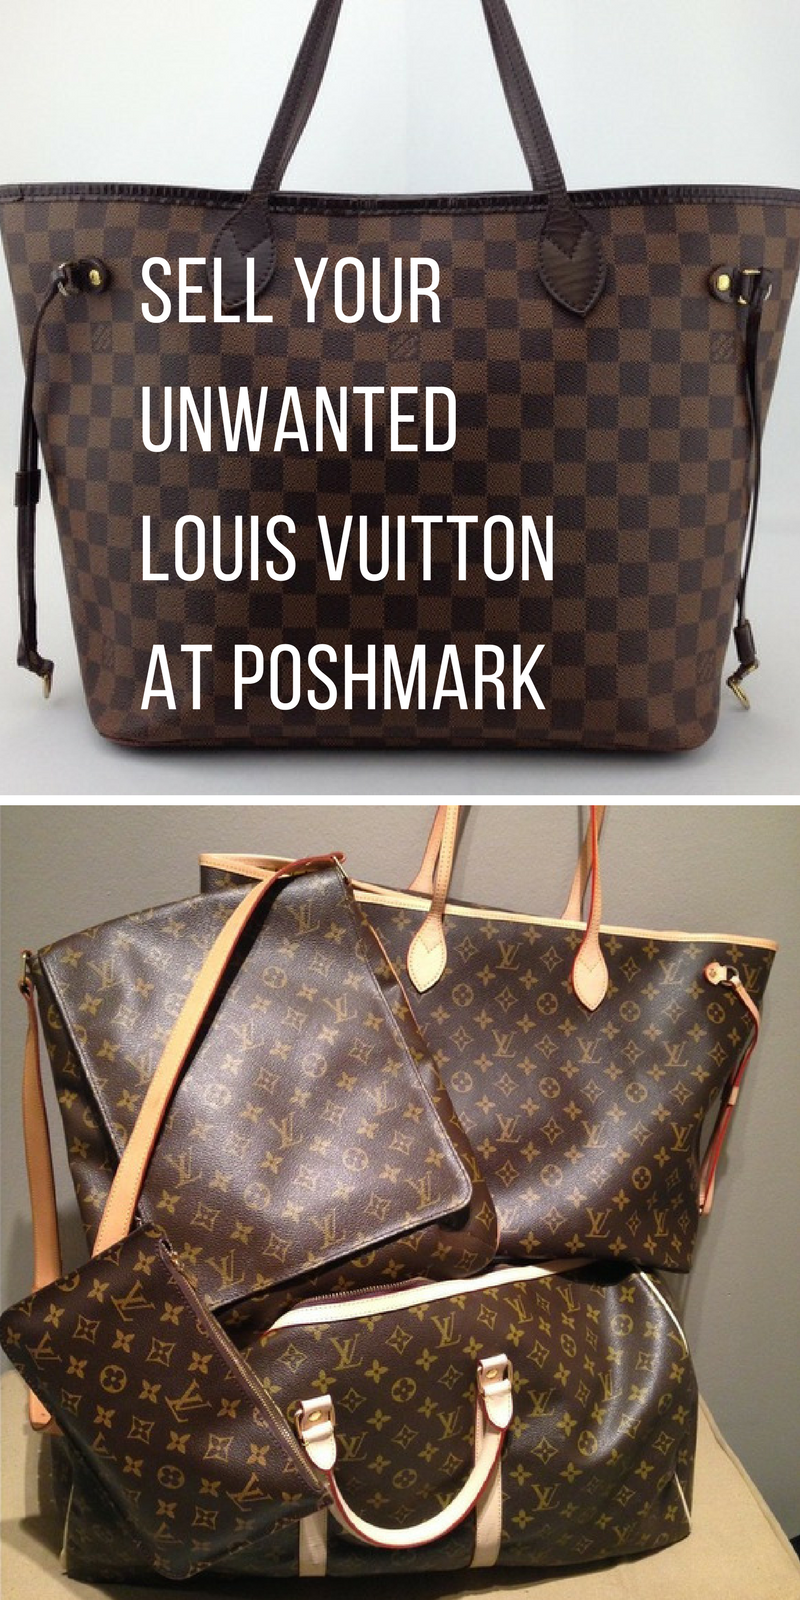 Install Poshmark now and Sell your pre-owned Luxury brands all from your phone. Be the owner of what price you want to list your item. Install the free app now.